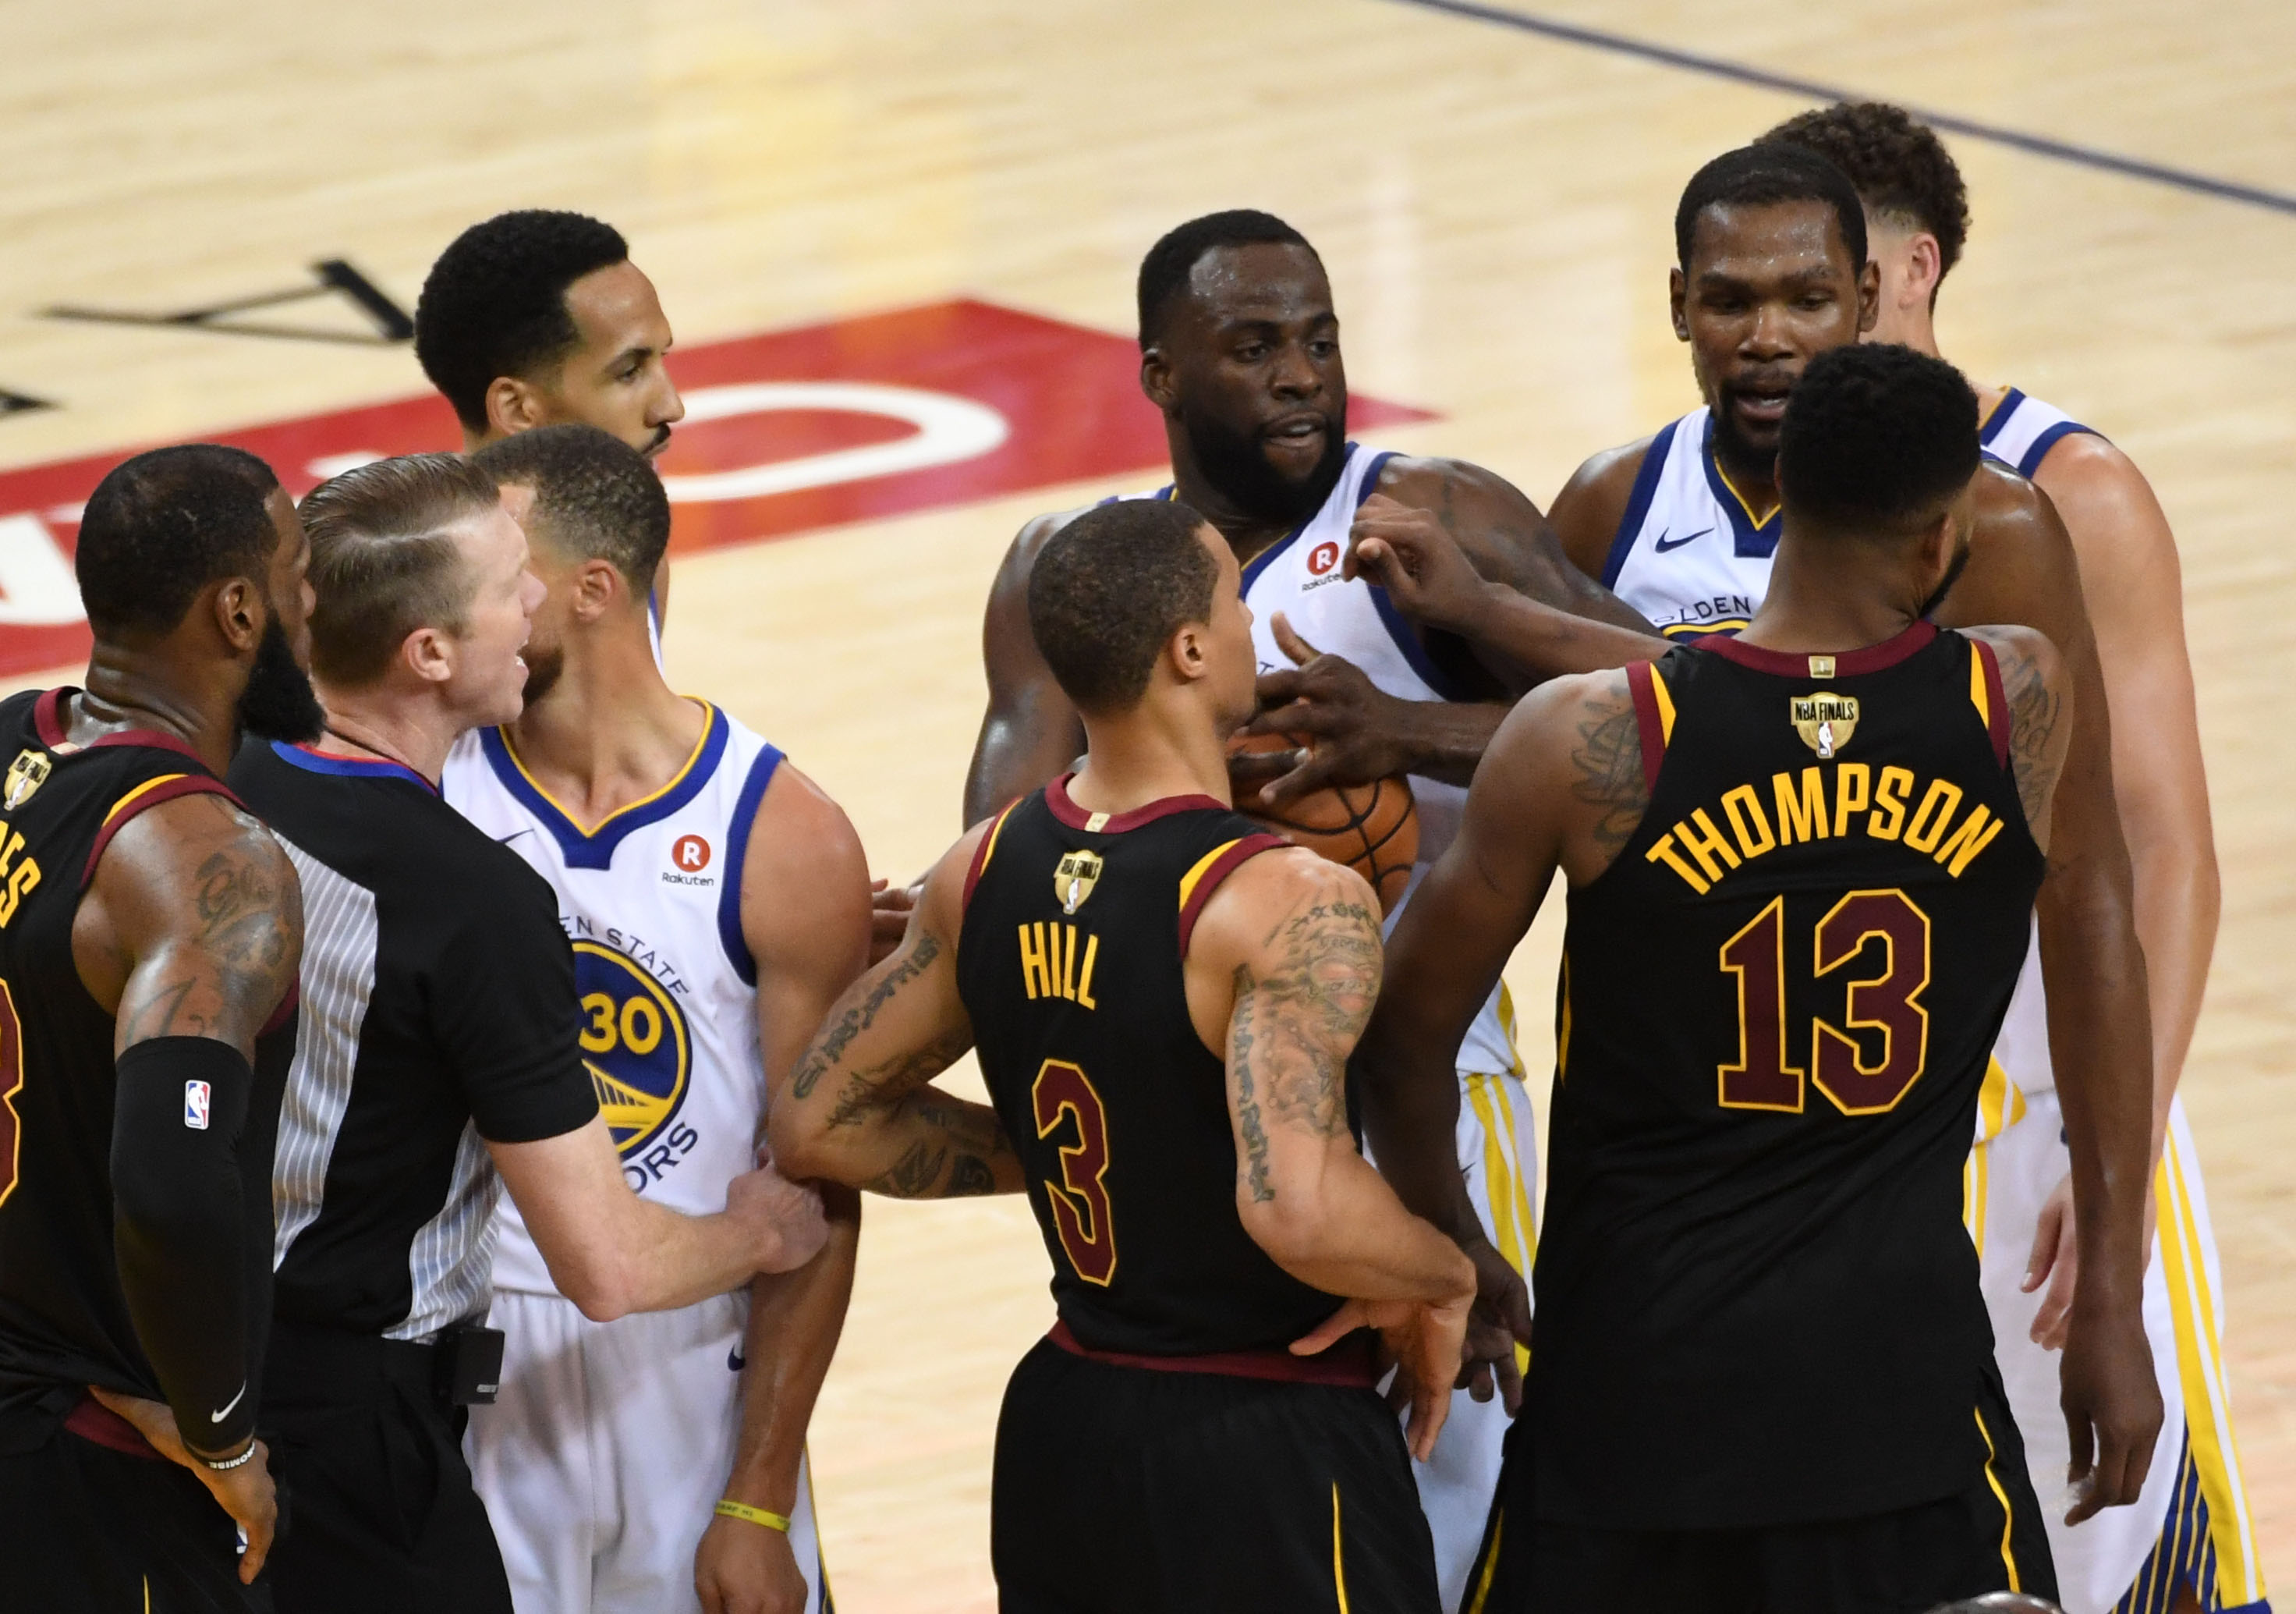 May 31, 2018; Oakland, CA, USA; Cleveland Cavaliers center Tristan Thompson (13) pushes Golden State Warriors forward Draymond Green (23) during overtime in game one of the 2018 NBA Finals at Oracle Arena. Mandatory Credit: Kyle Terada-USA TODAY Sports